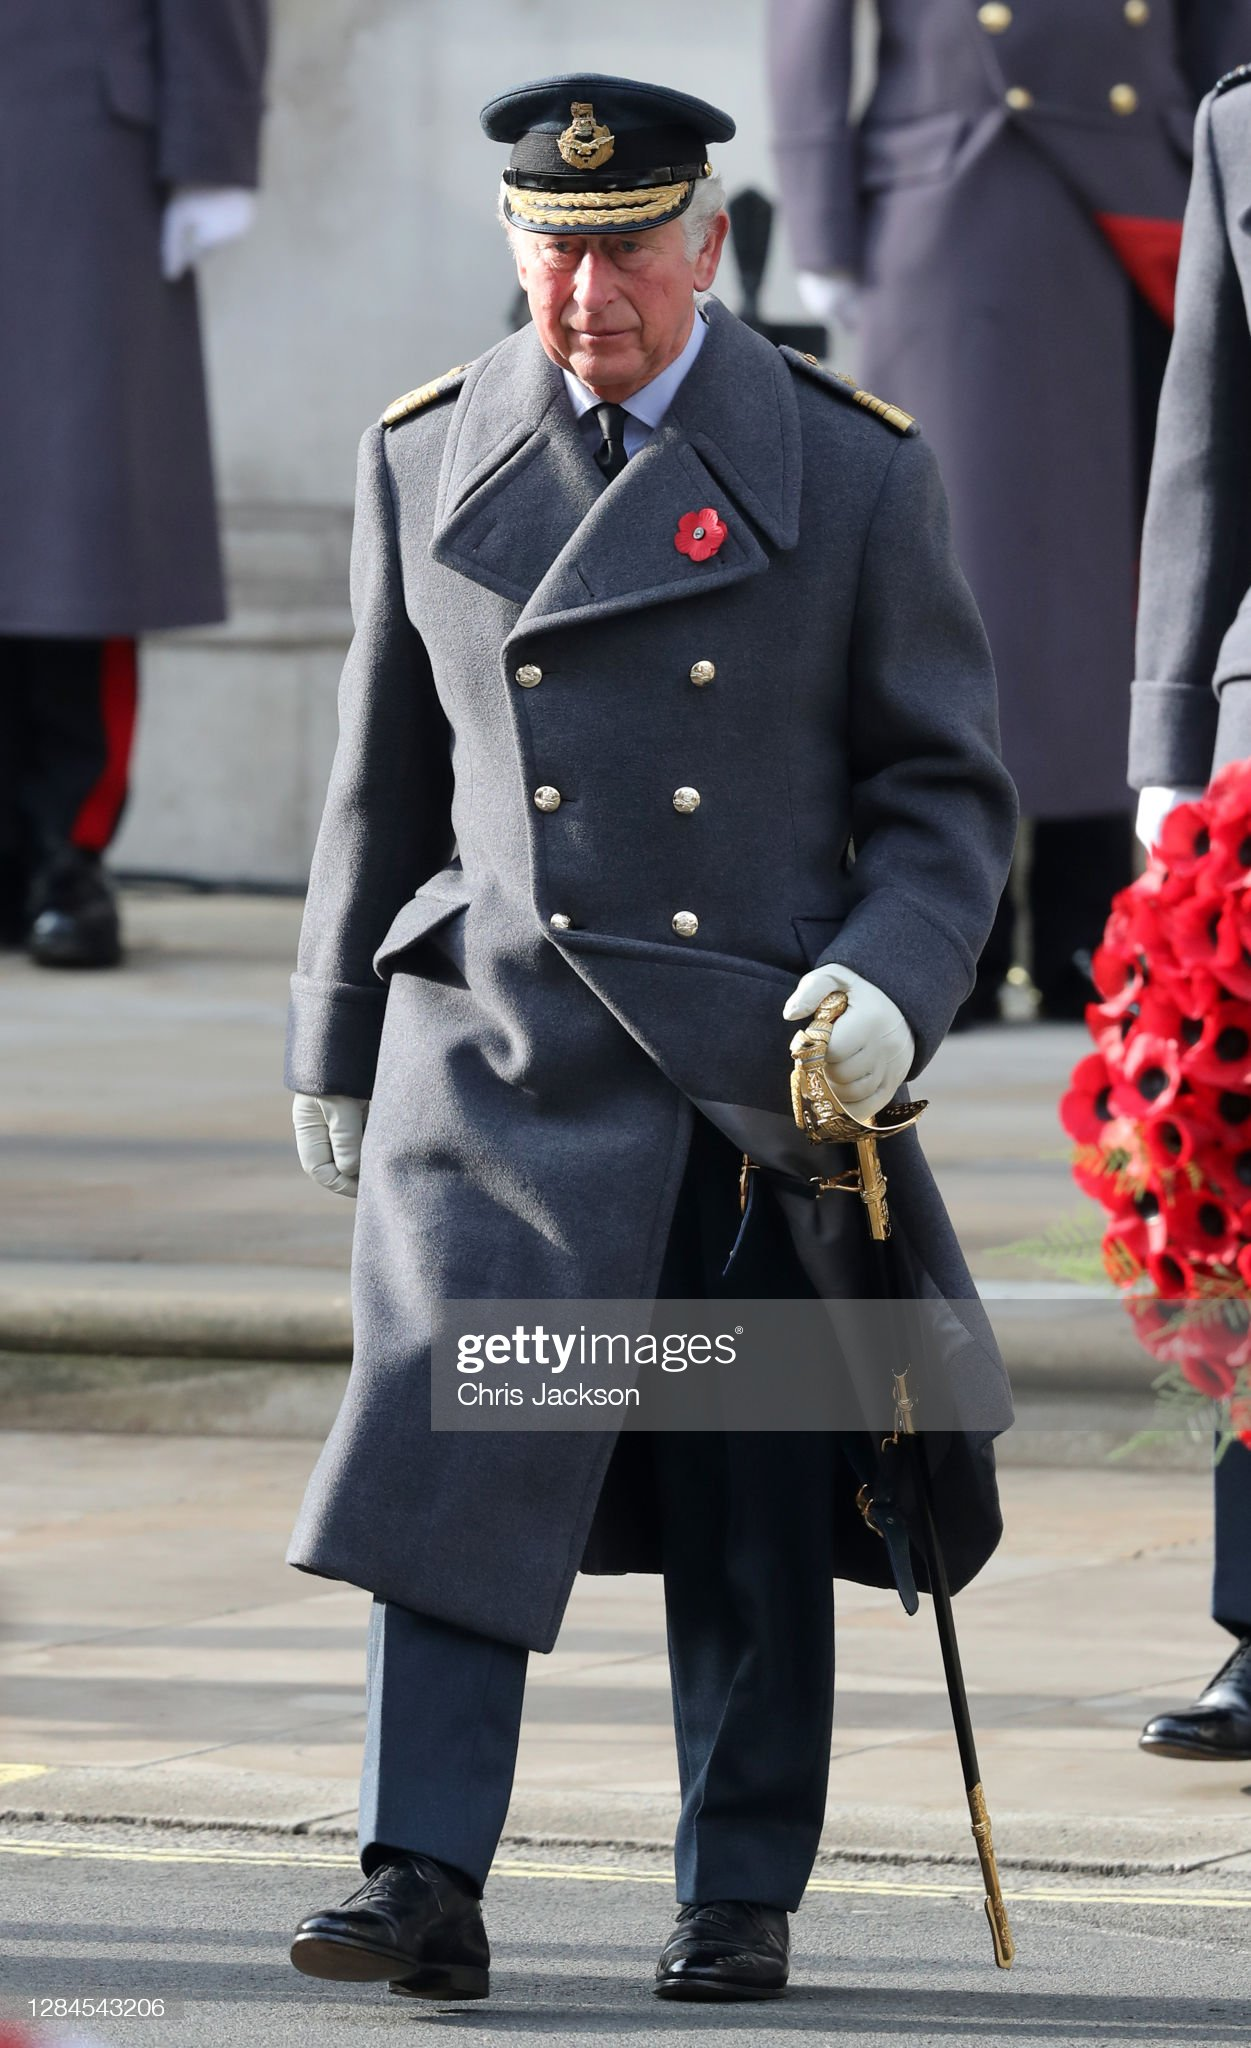 https://media.gettyimages.com/photos/prince-charles-prince-of-wales-during-the-national-service-of-at-the-picture-id1284543206?s=2048x2048